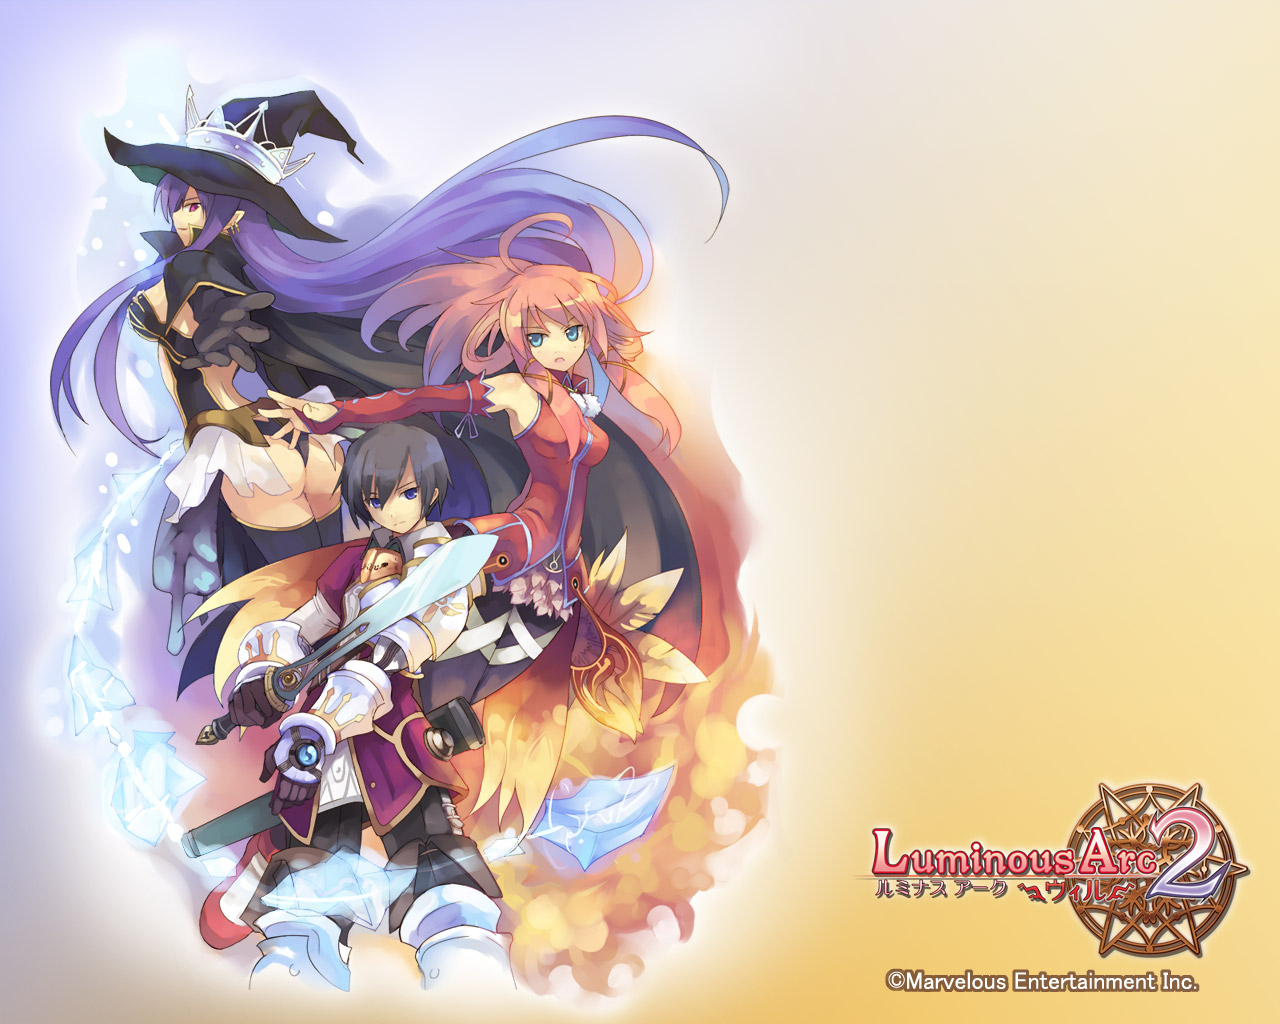 Fondo de Luminous Arc 2: Will para Nintendo DS